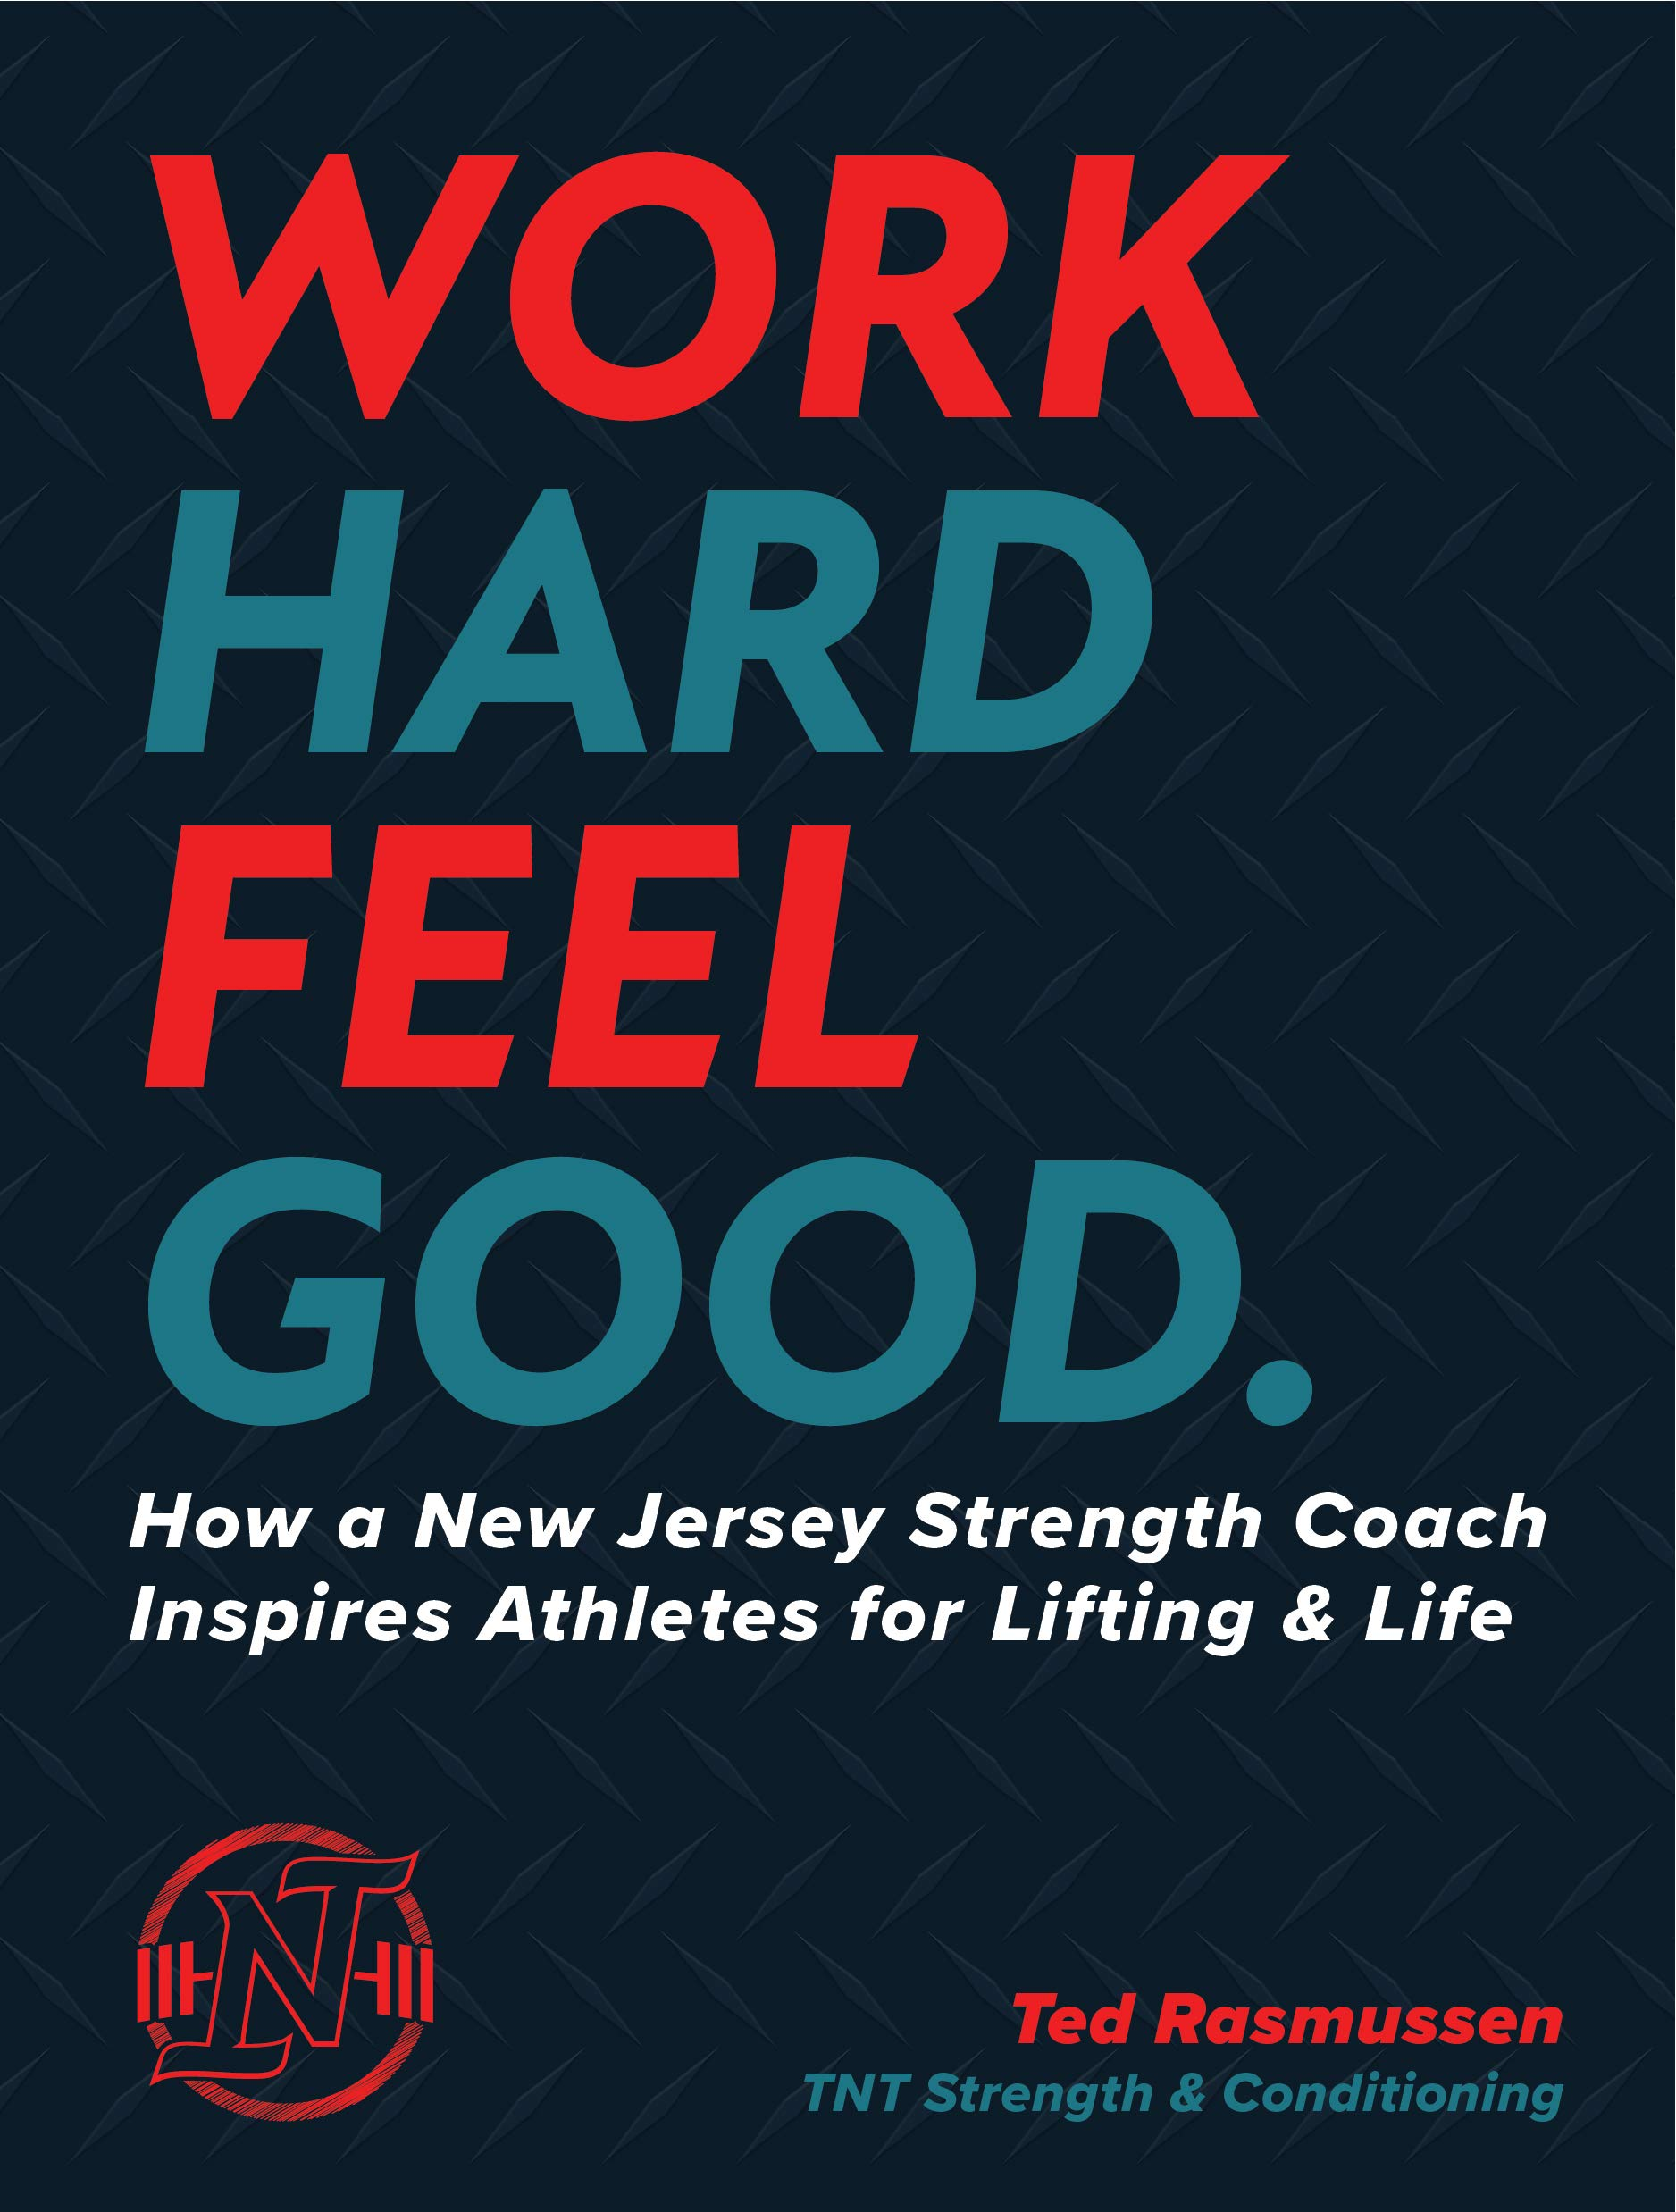 Work Hard Feel Good: How a New Jersey Strength Coach Inspires Athletes for Lifting & Life